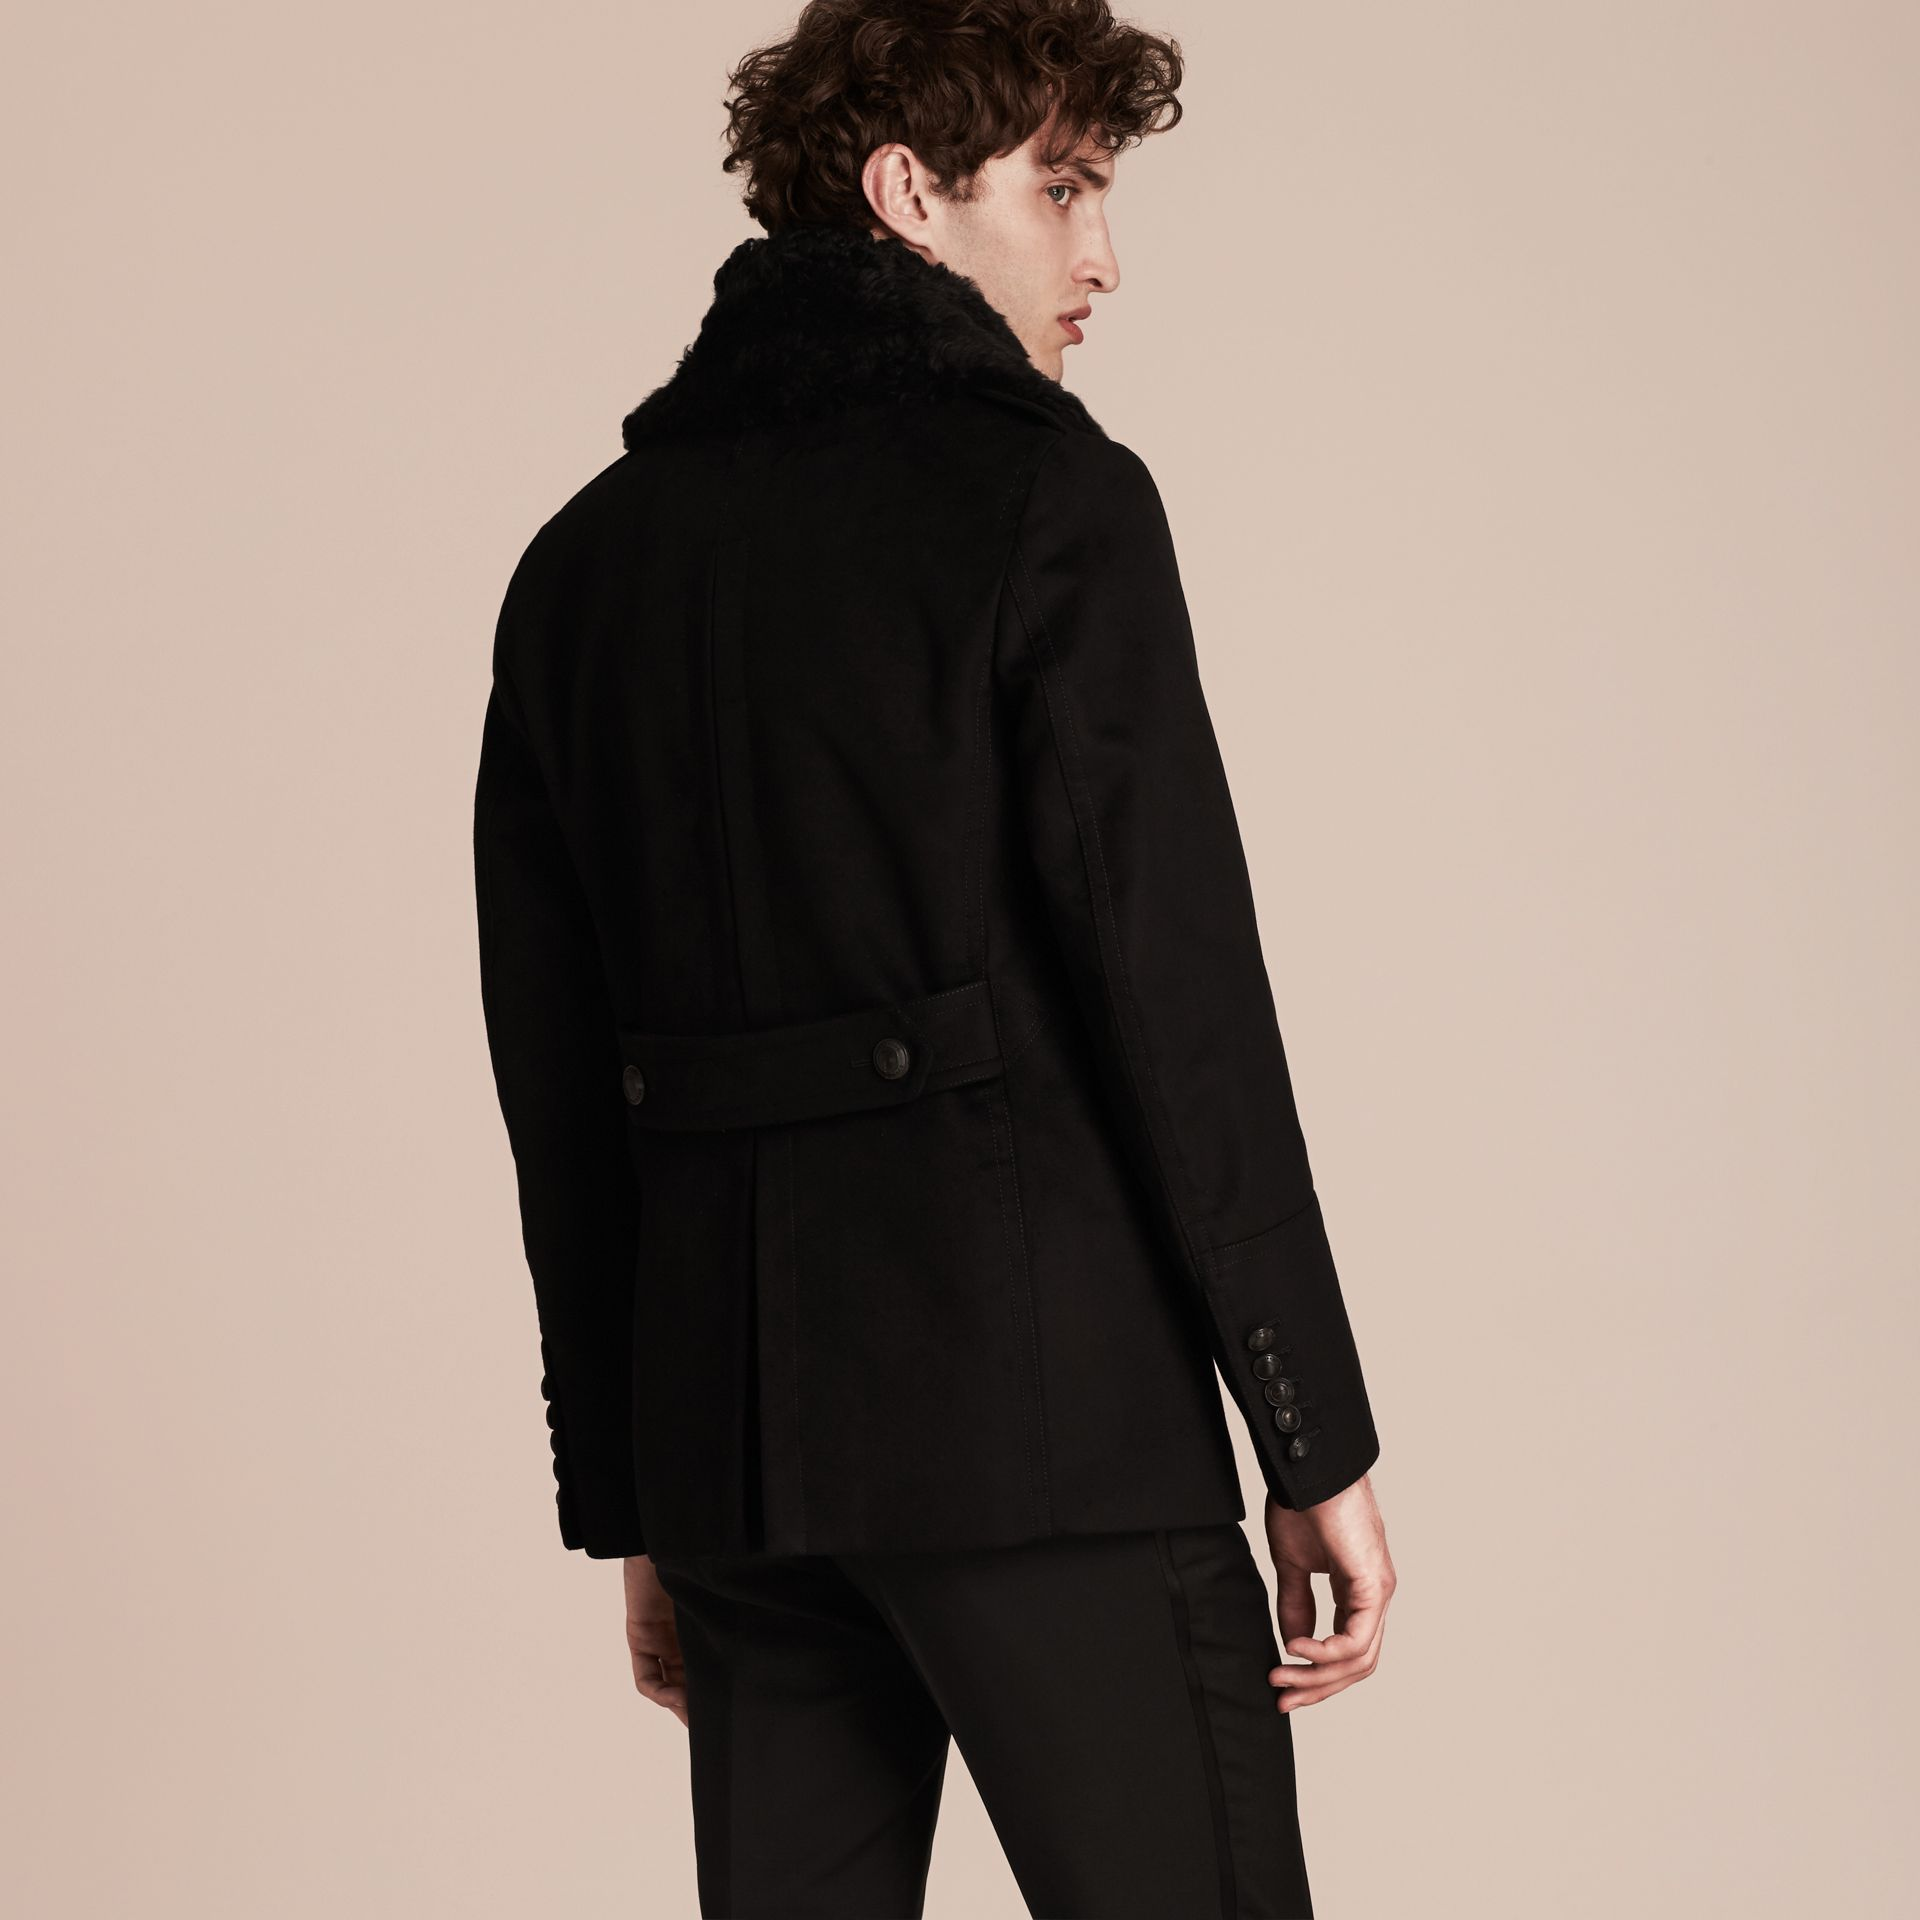 Black Technical-cotton Moleskin Pea Coat with Shearling Collar - gallery image 2